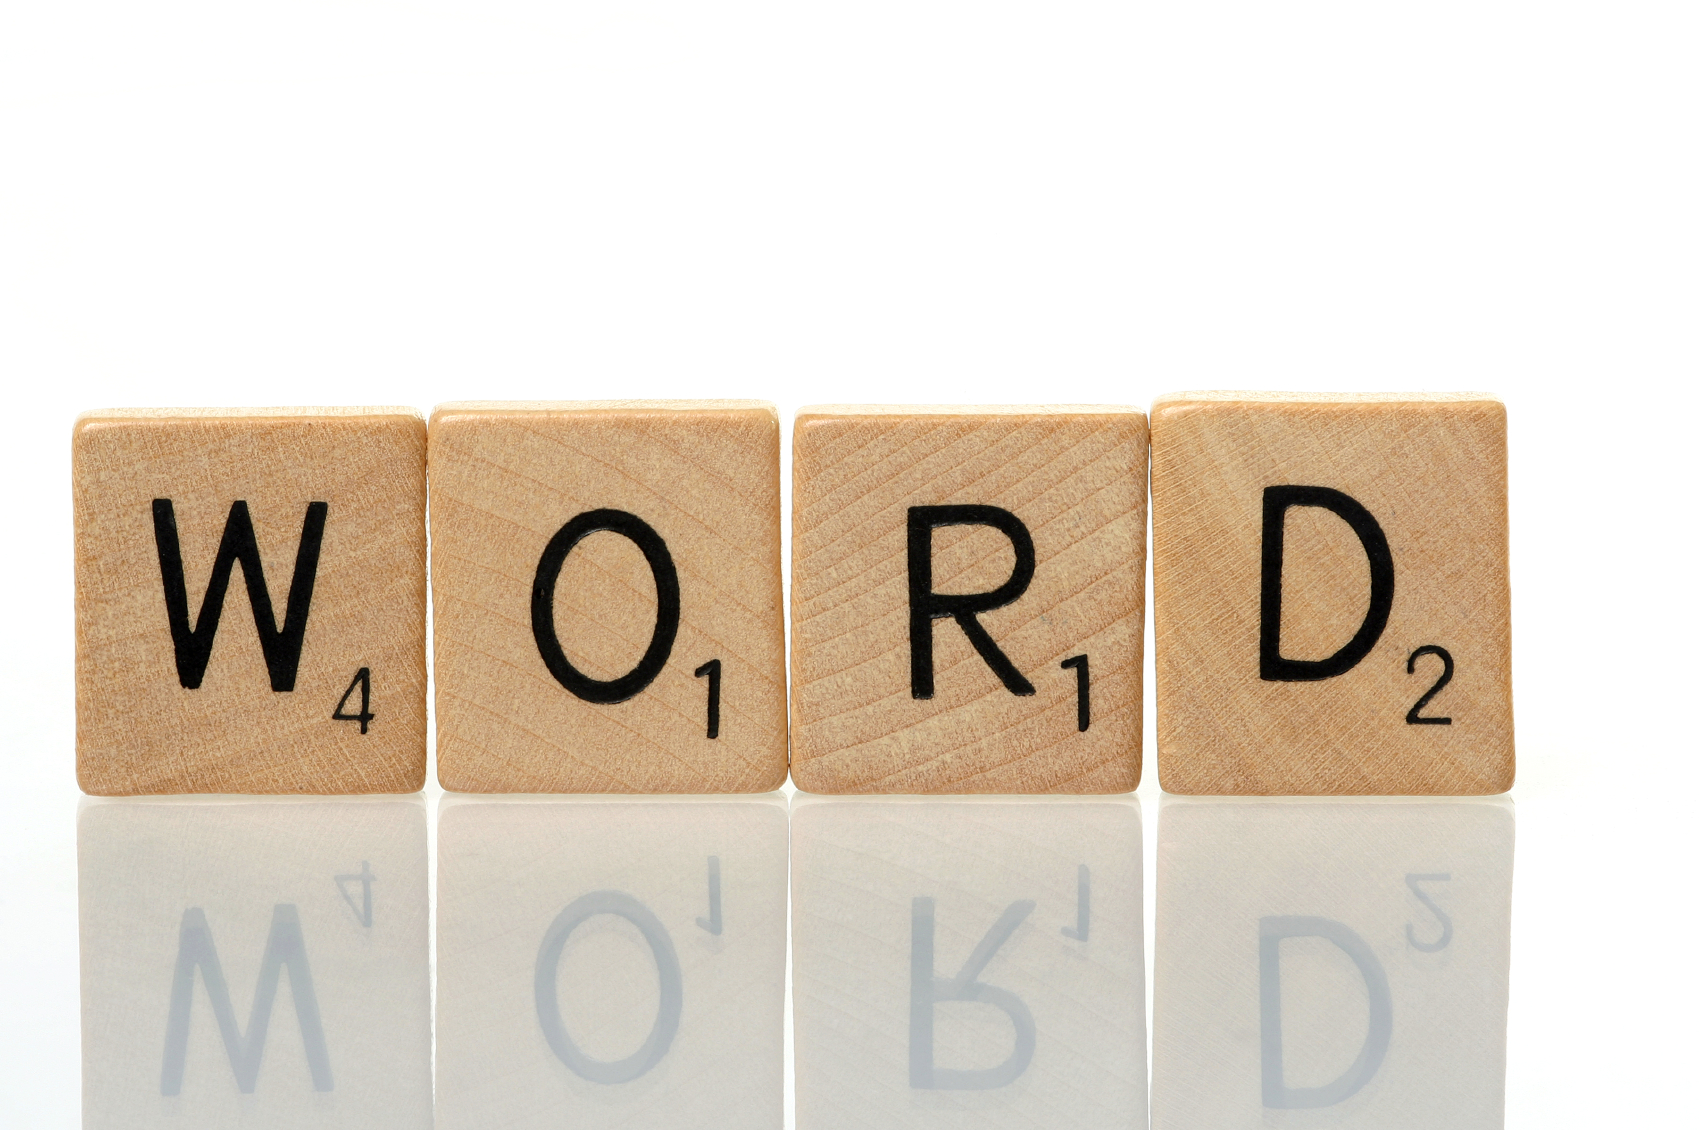 What are your words? February writing prompt | Sound Matters Music ...